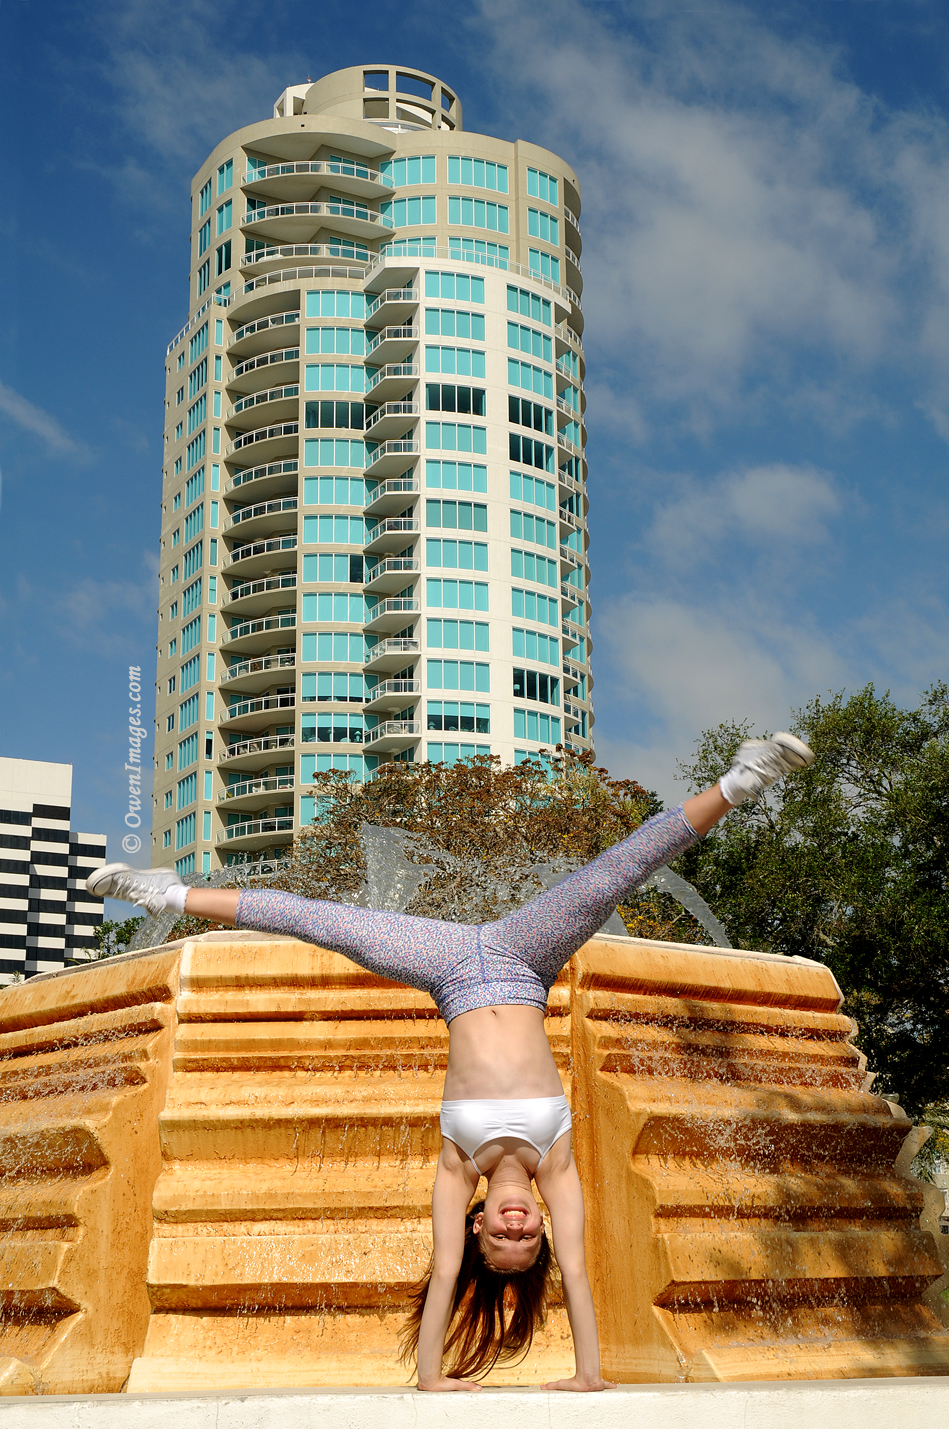 Gymnast doing a cartwheel on the edge of a fountain in downtown St Petersburg, Florida